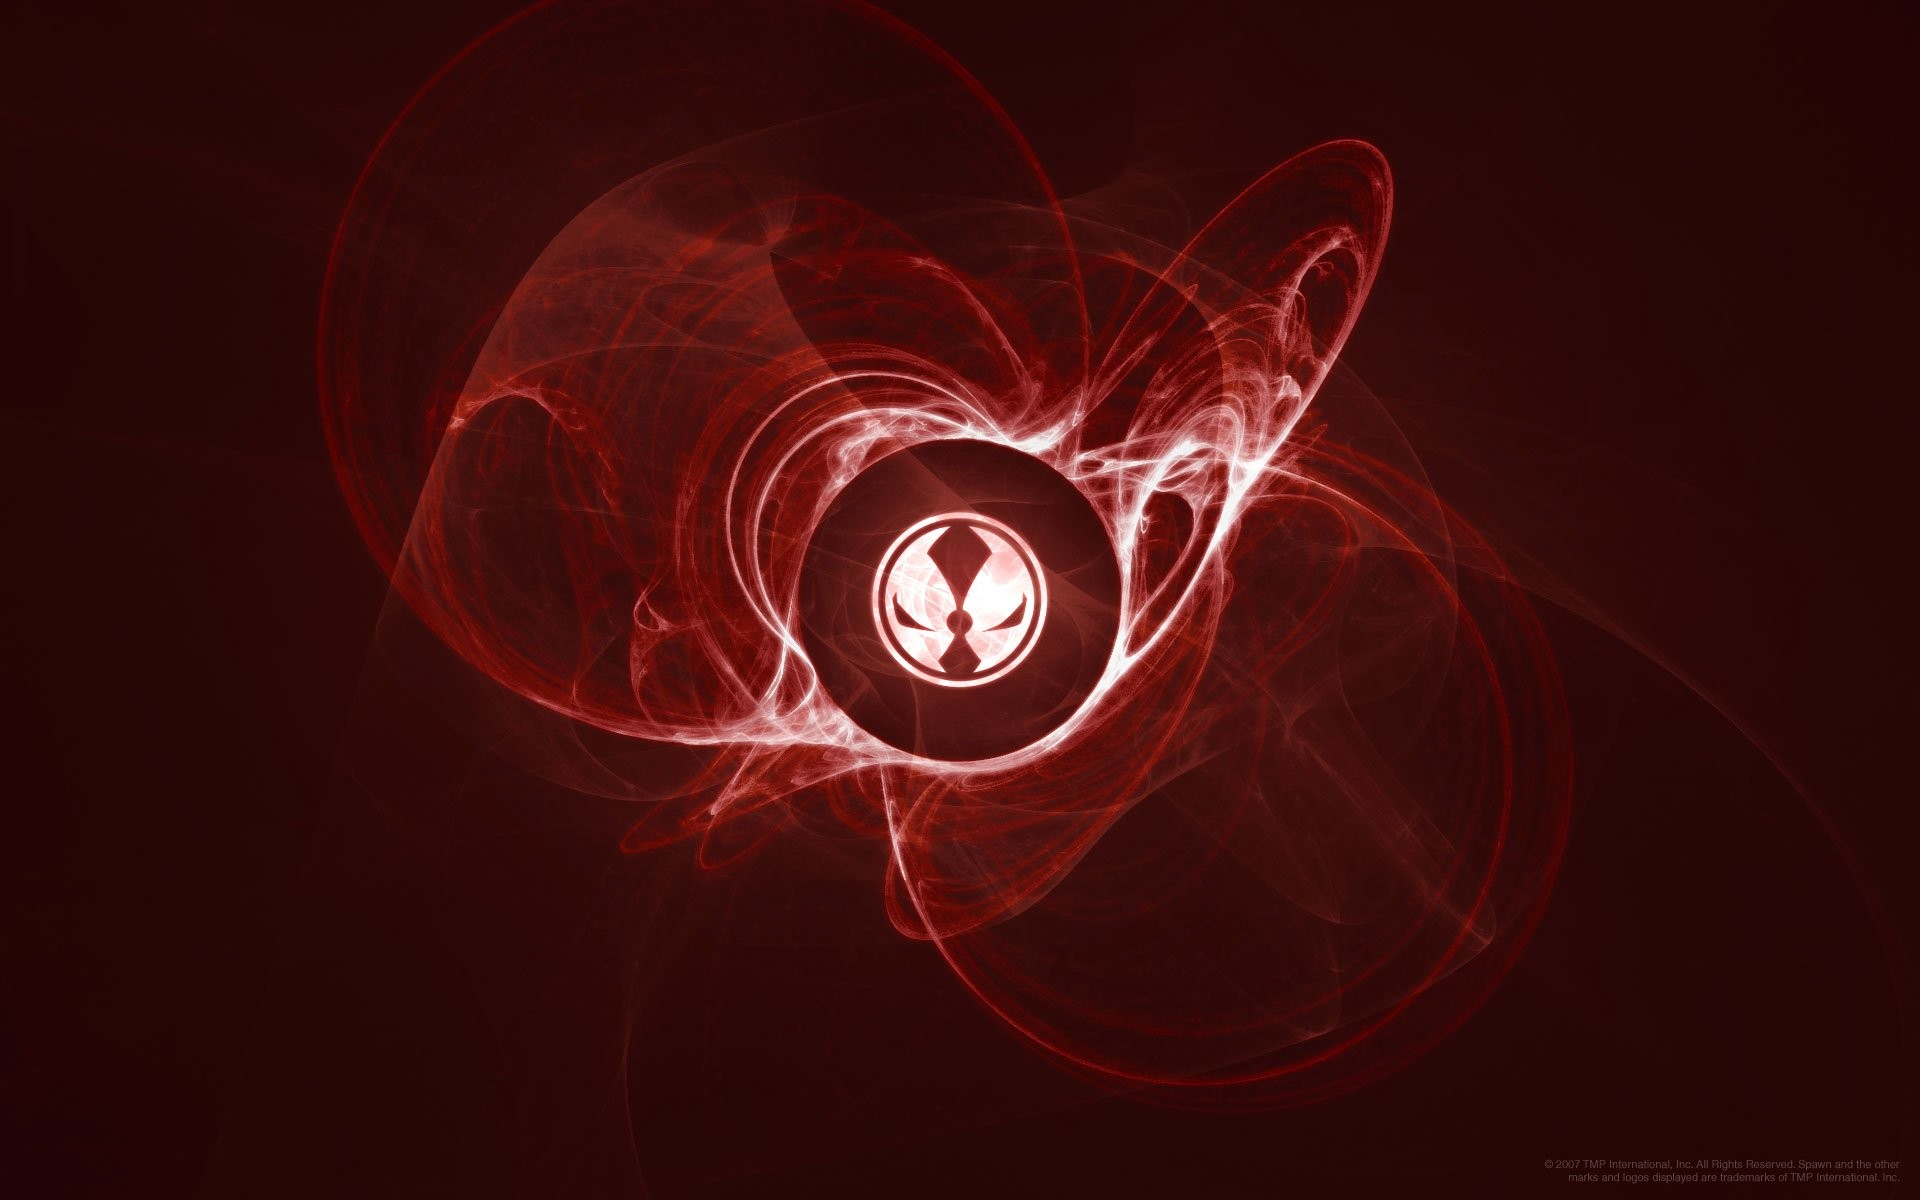 Res: 1920x1200, HD Wallpaper   Background Image ID:30624